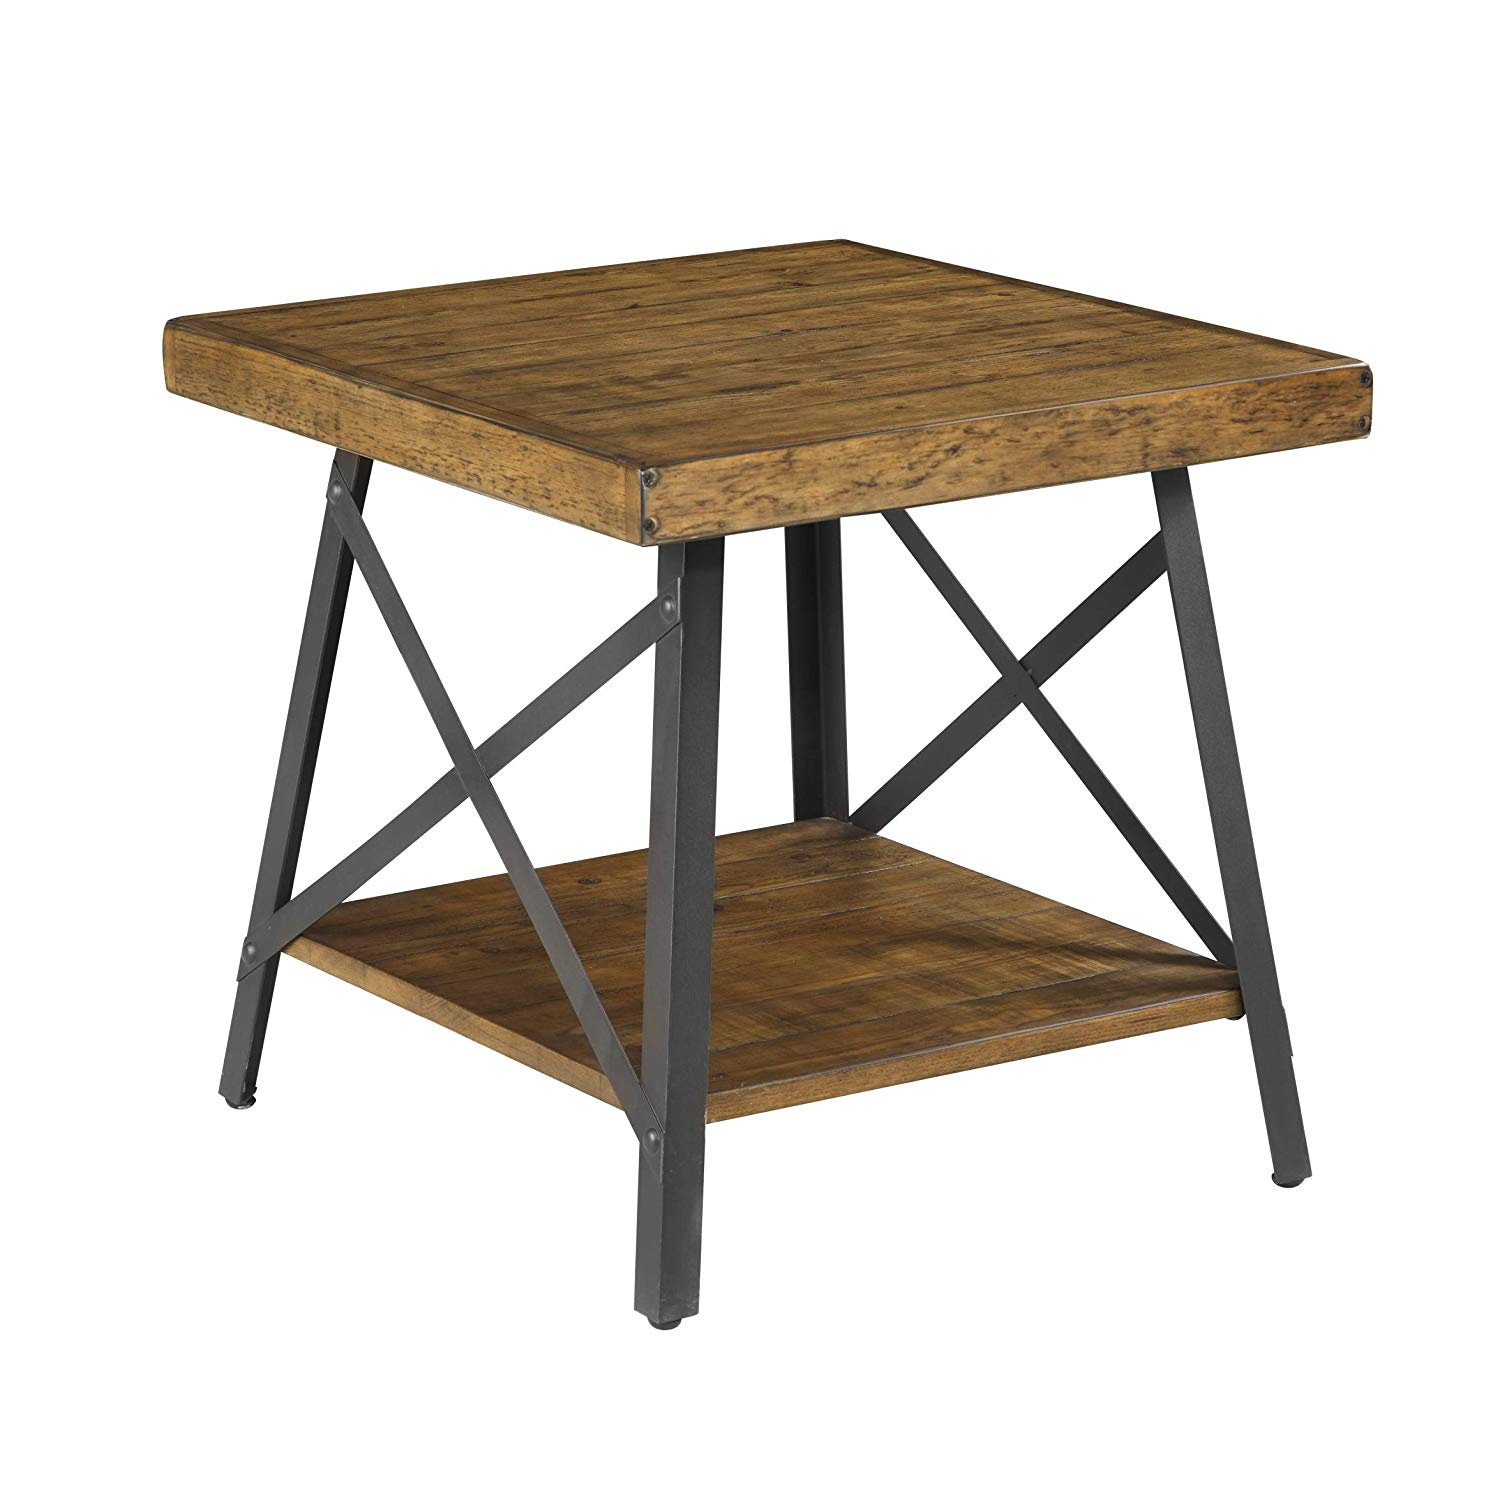 emerald home chandler rustic wood end table with solid oak accent tables top metal base and open storage shelf kitchen dining art deco dressing unusual coffee ideas marble steel